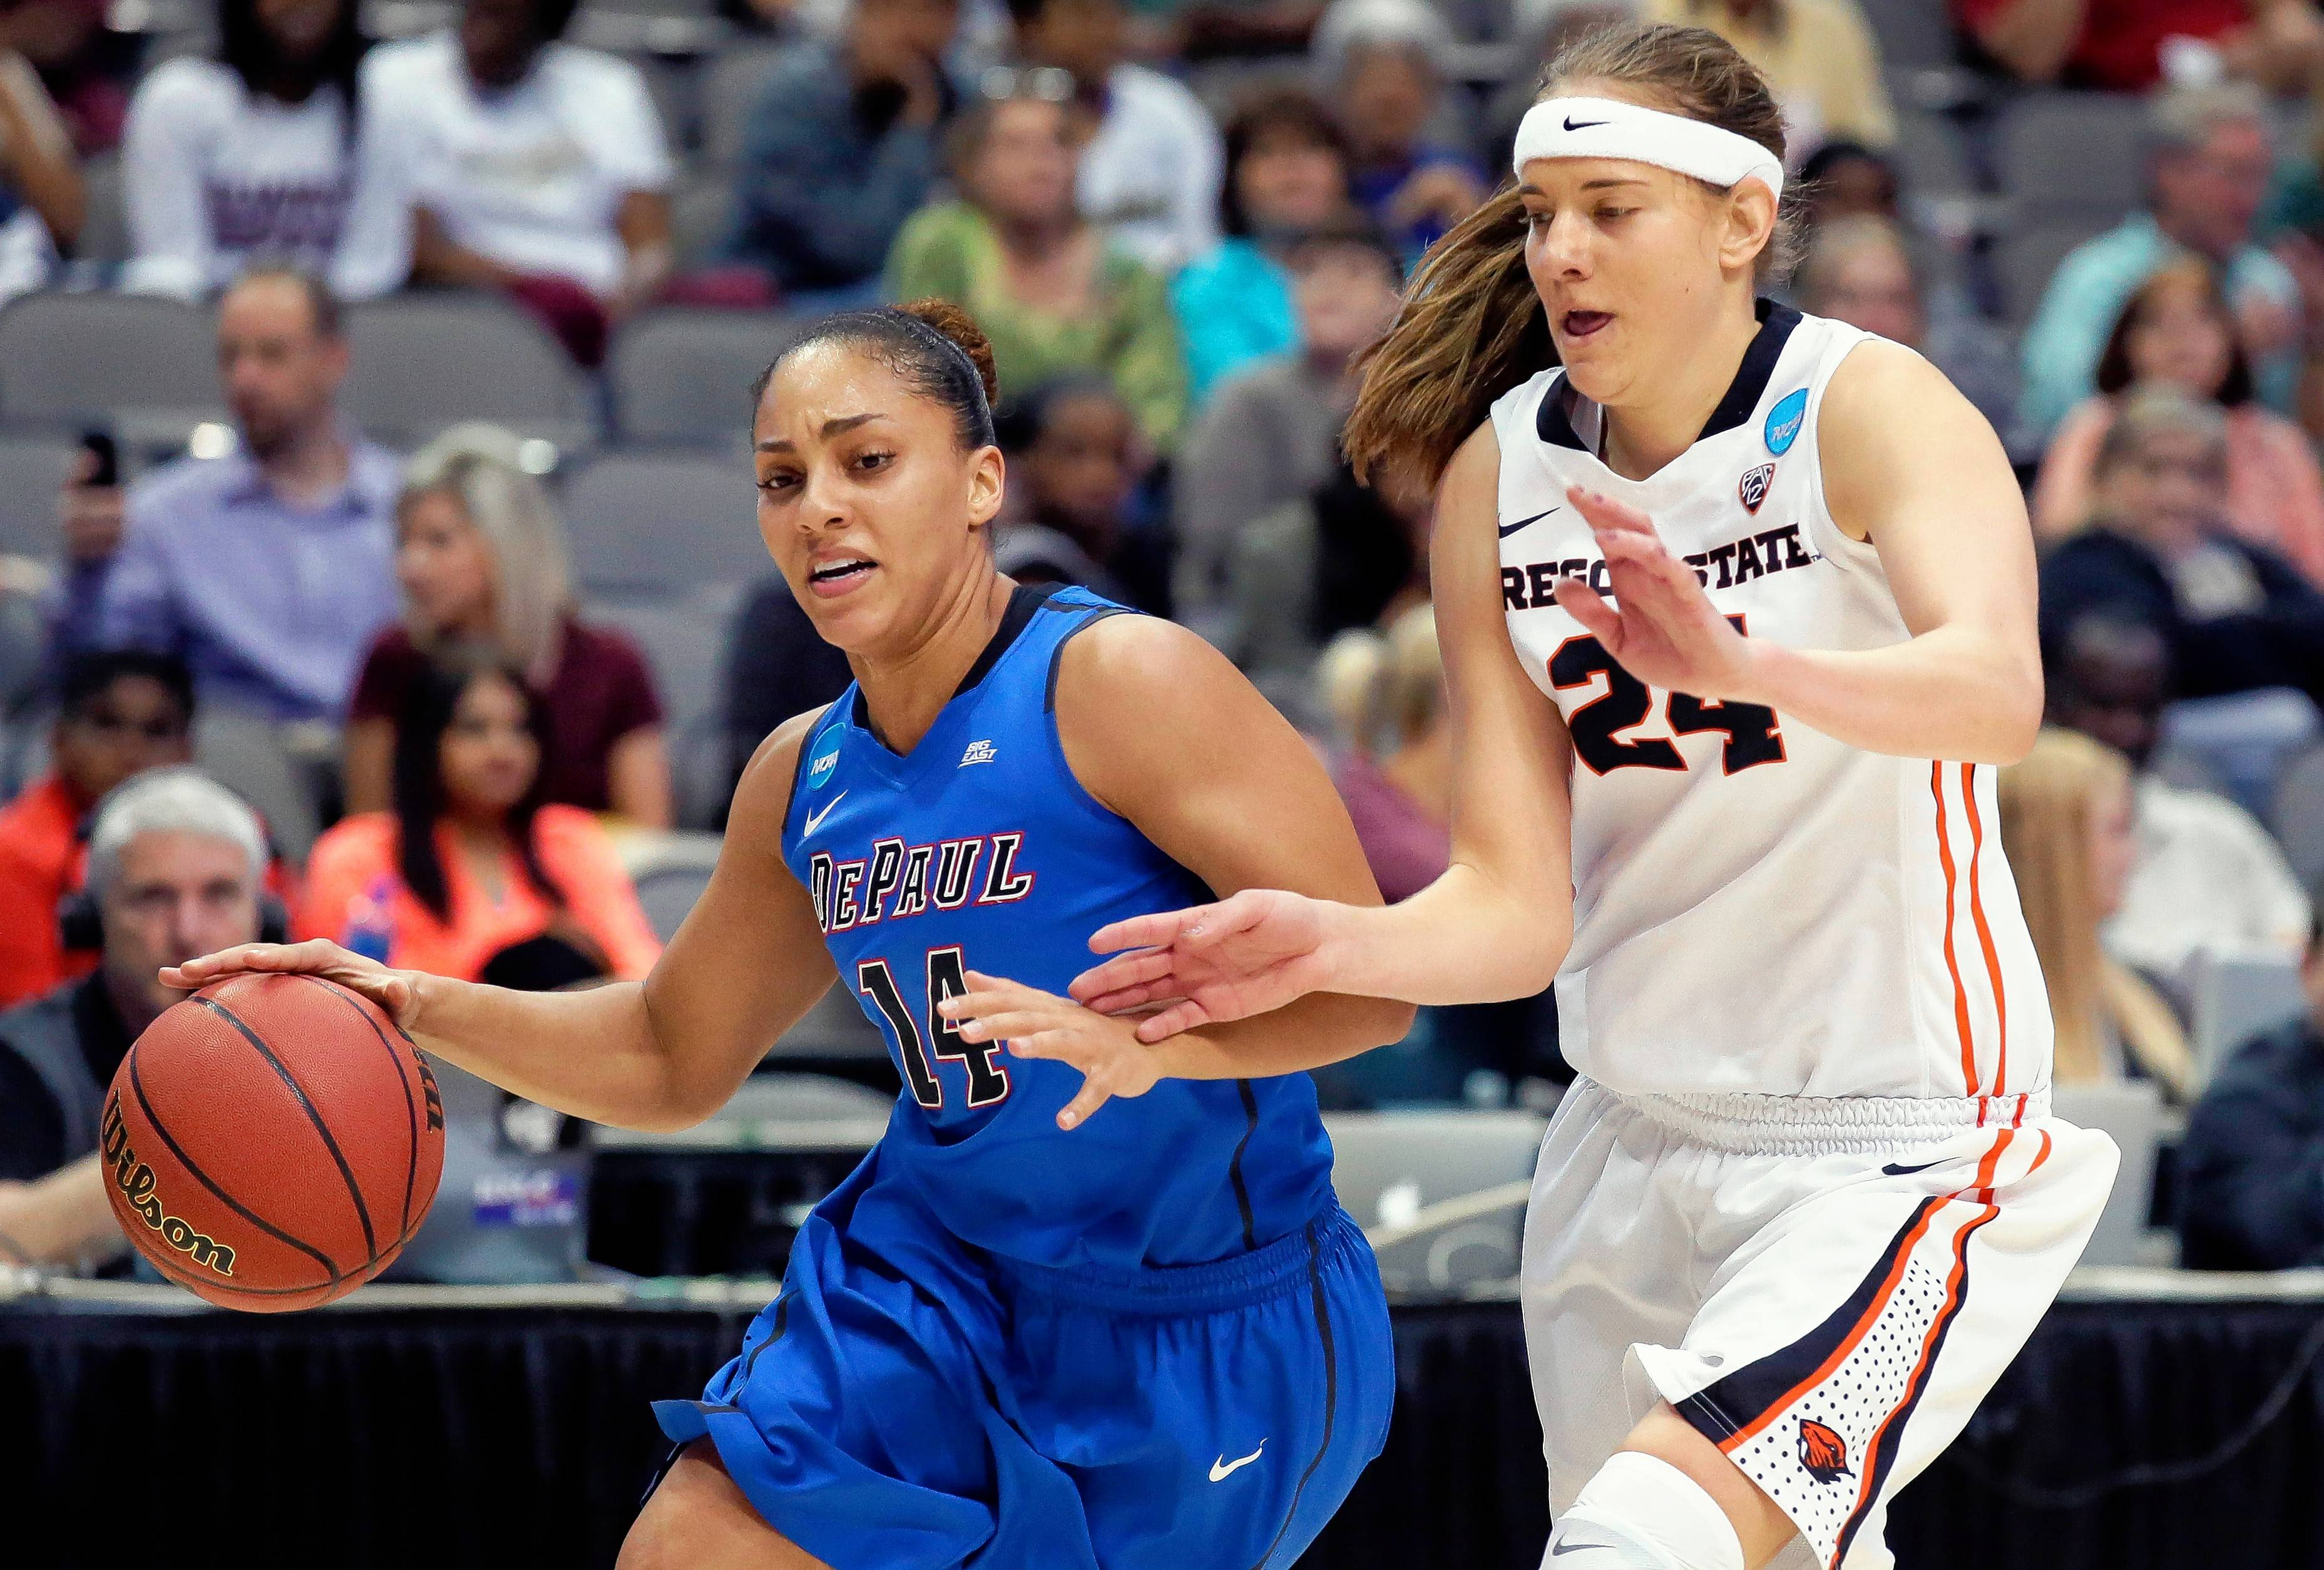 DePaul guard Jessica January, left, was recently voted Big East preseason player of the year.